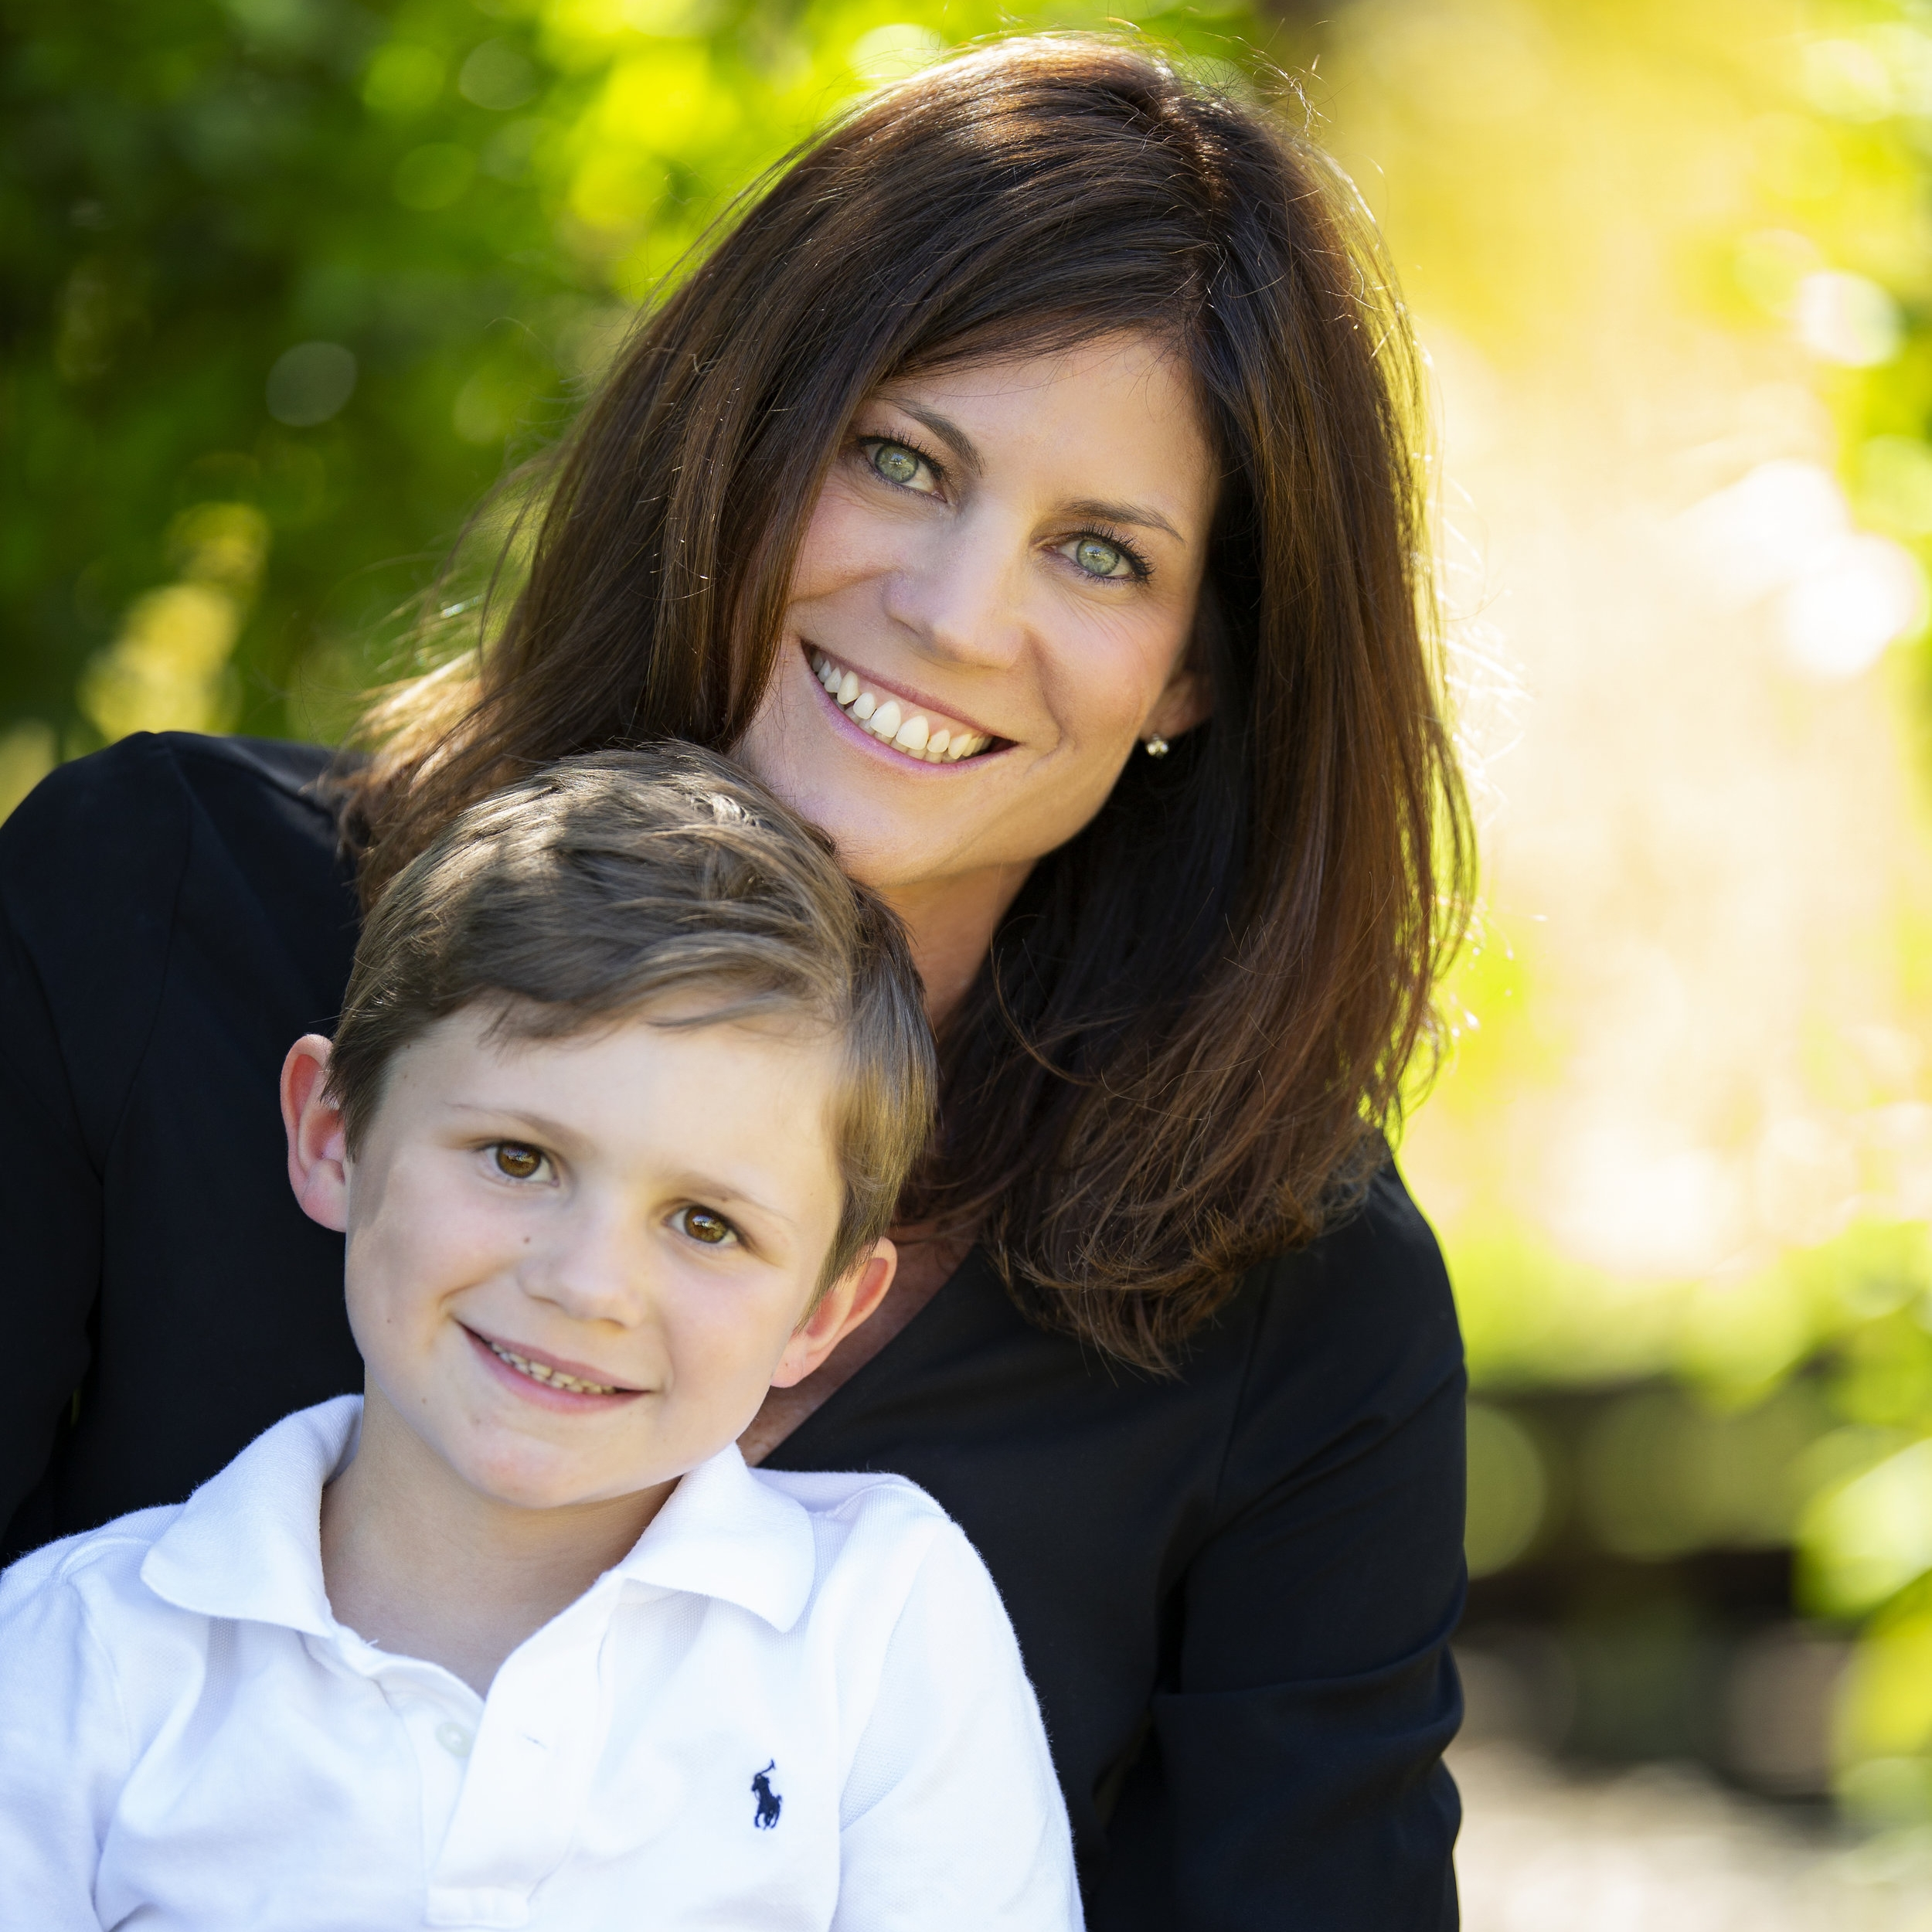 PORTRAITS THAT CAPTURE YOU - Allow me to capture the moments you will treasure forever. Either in my home studio, or outdoors on my 6-acre ranch I love working with families, children, and high school seniors. View my portrait portfolio for some examples!